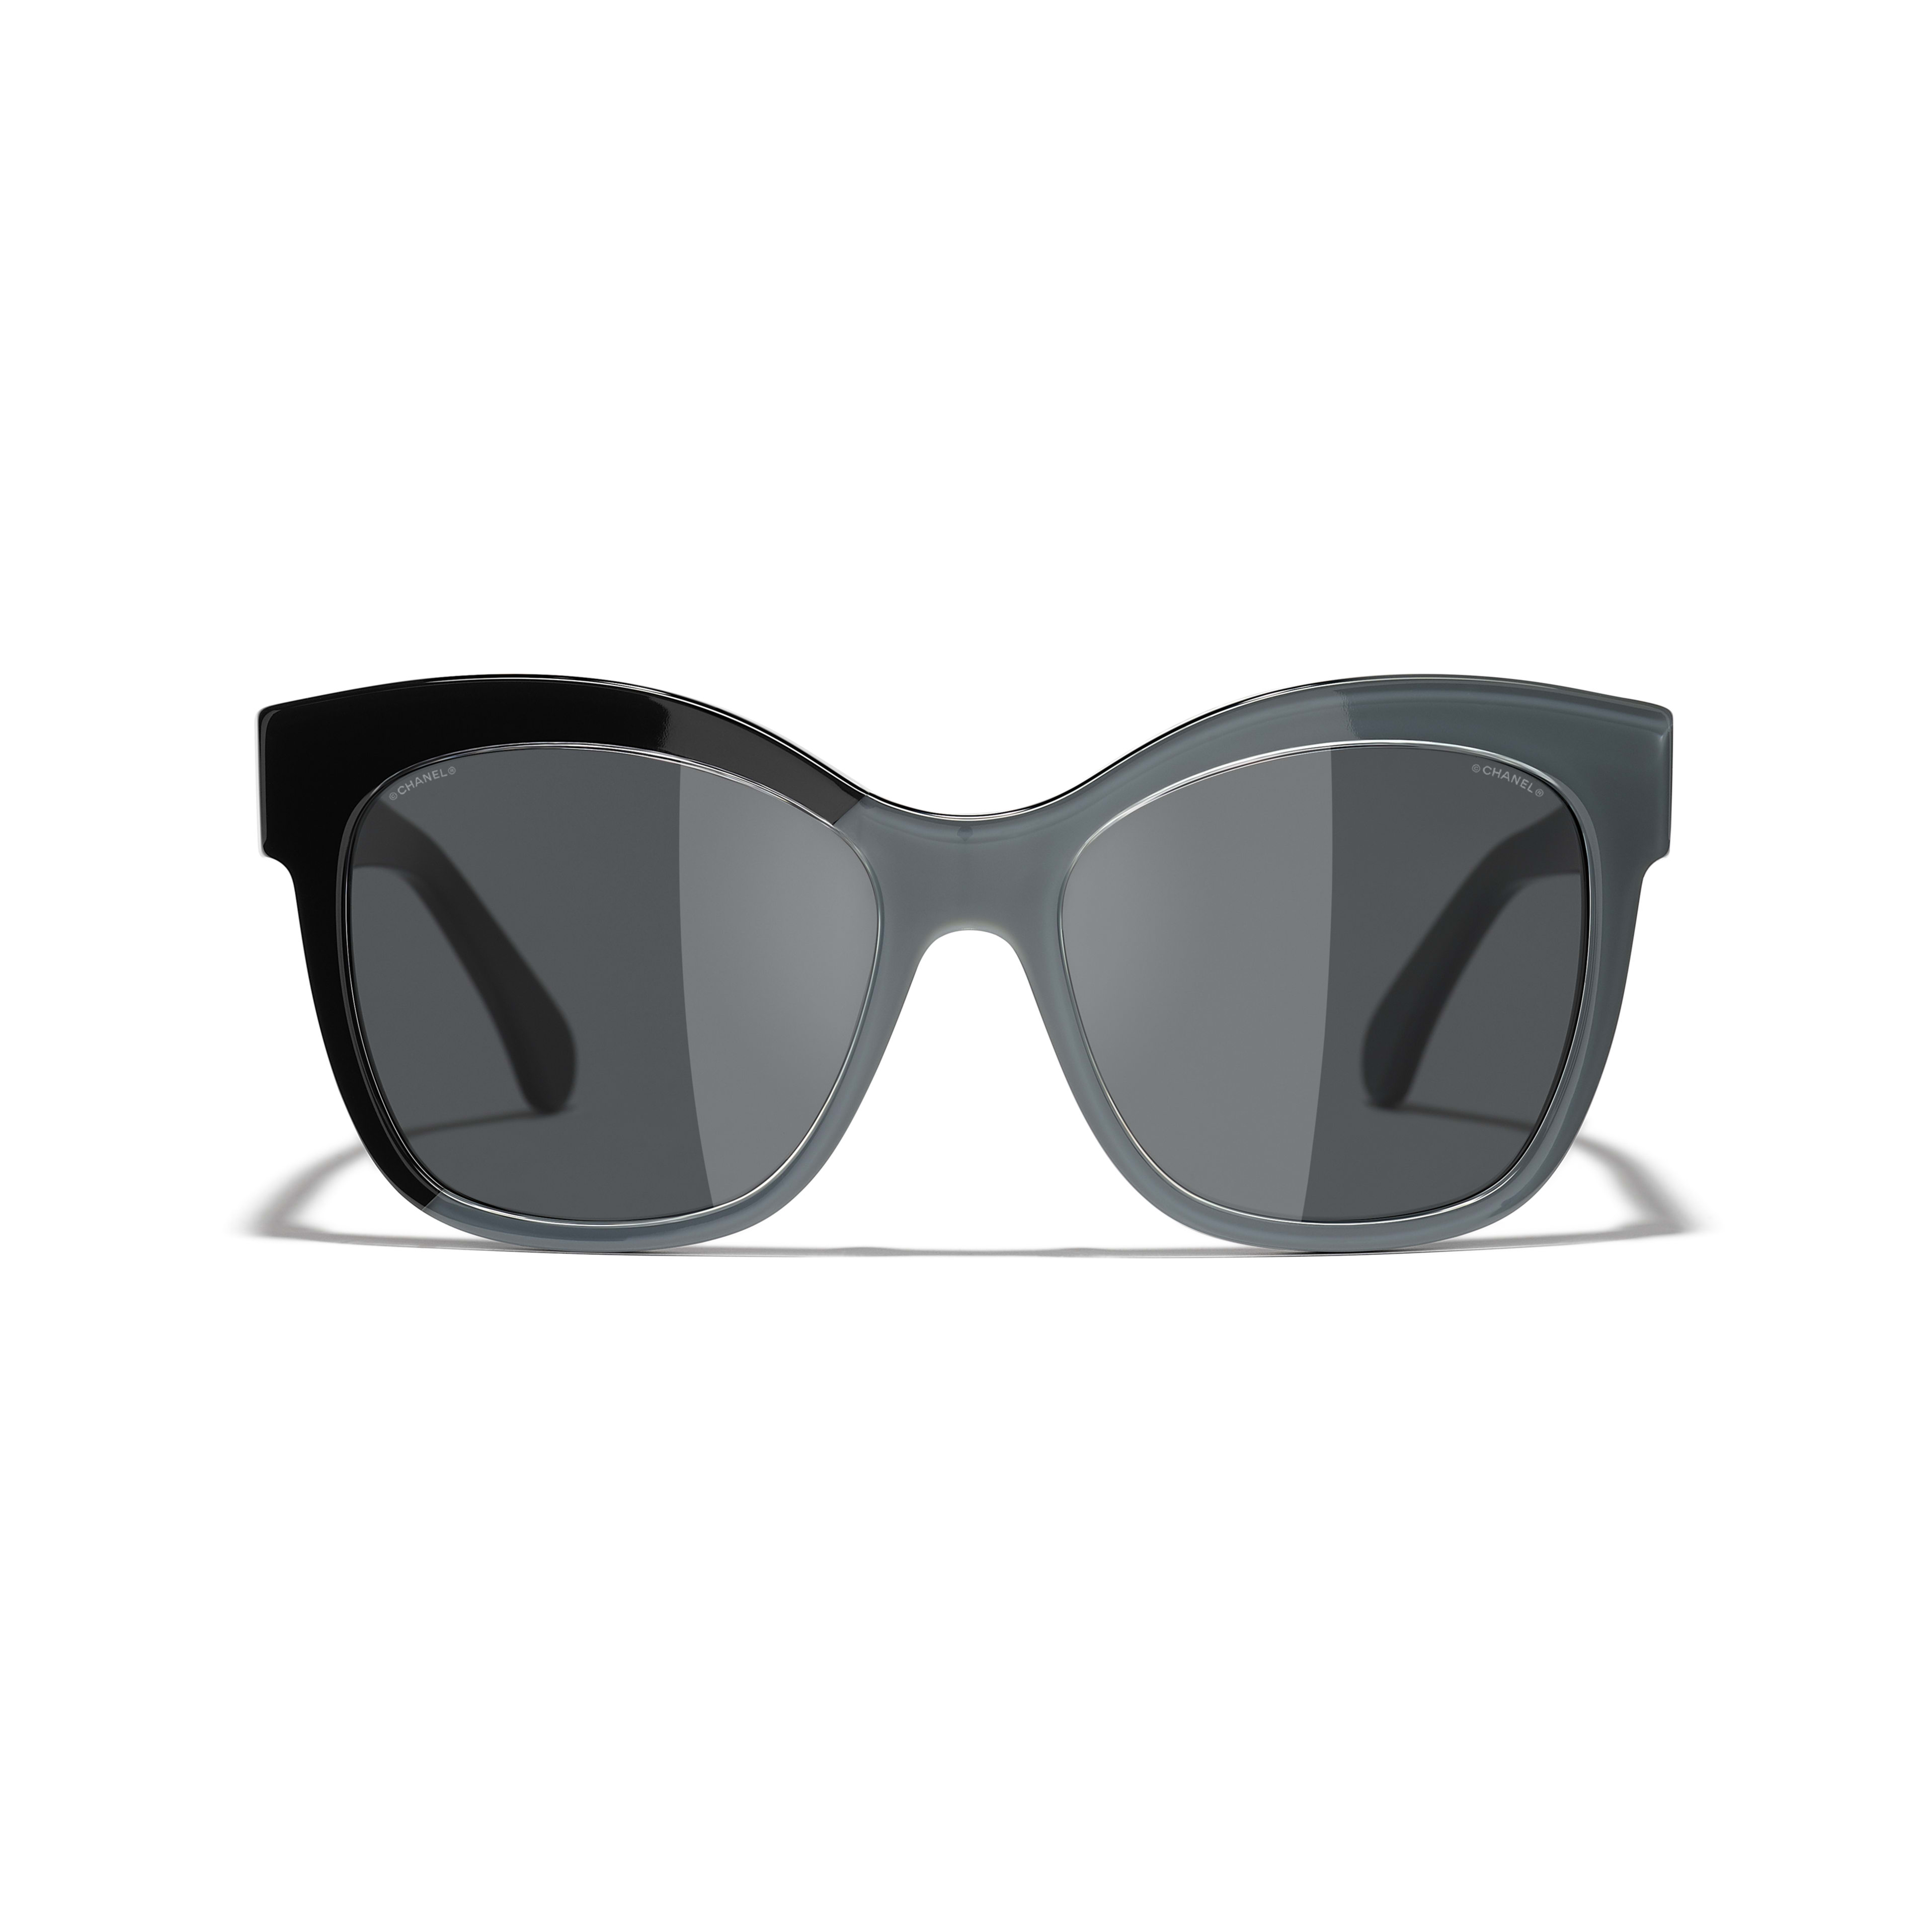 Butterfly Sunglasses - Black & Gray - Acetate - CHANEL - Alternative view - see standard sized version